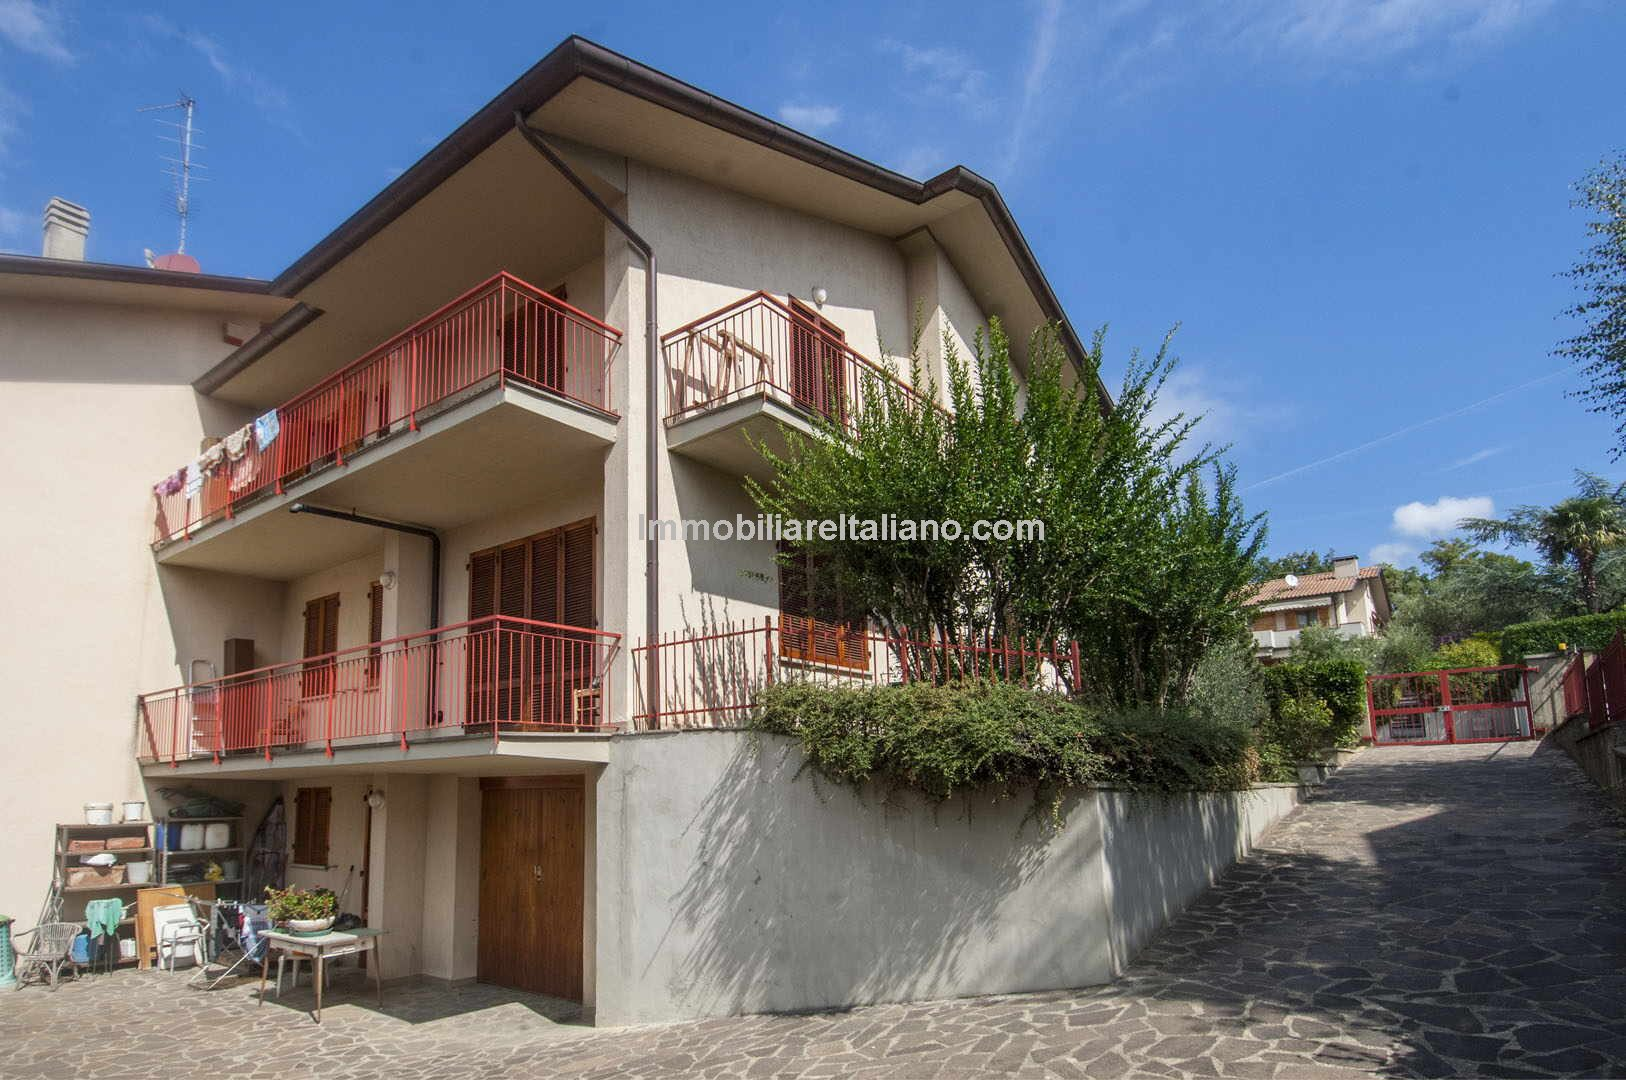 Home in Italy located in a residential area near to the hospital and just outside the historic centre of Sansepolcro, near the Tuscan border with Umbria A semi-detached house with 225 sqm of surface area with private garden and garage.